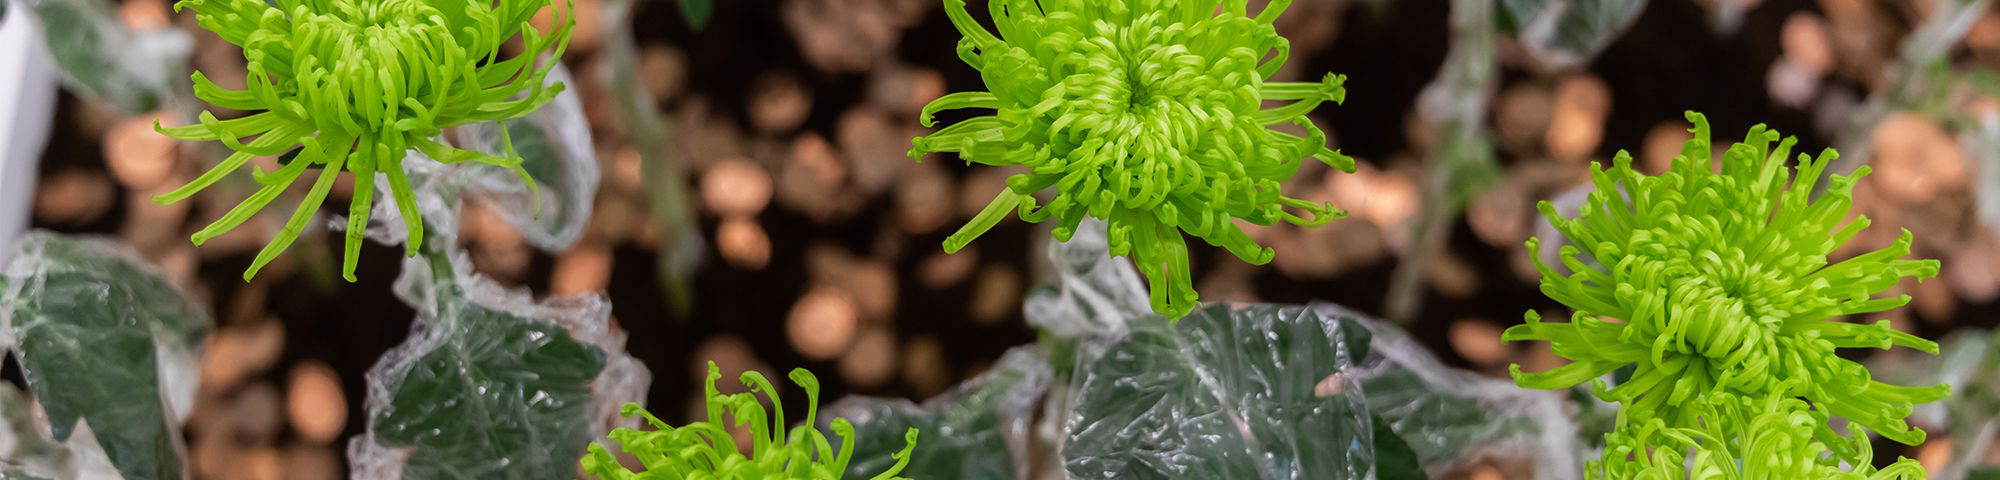 Close up shot of green plants